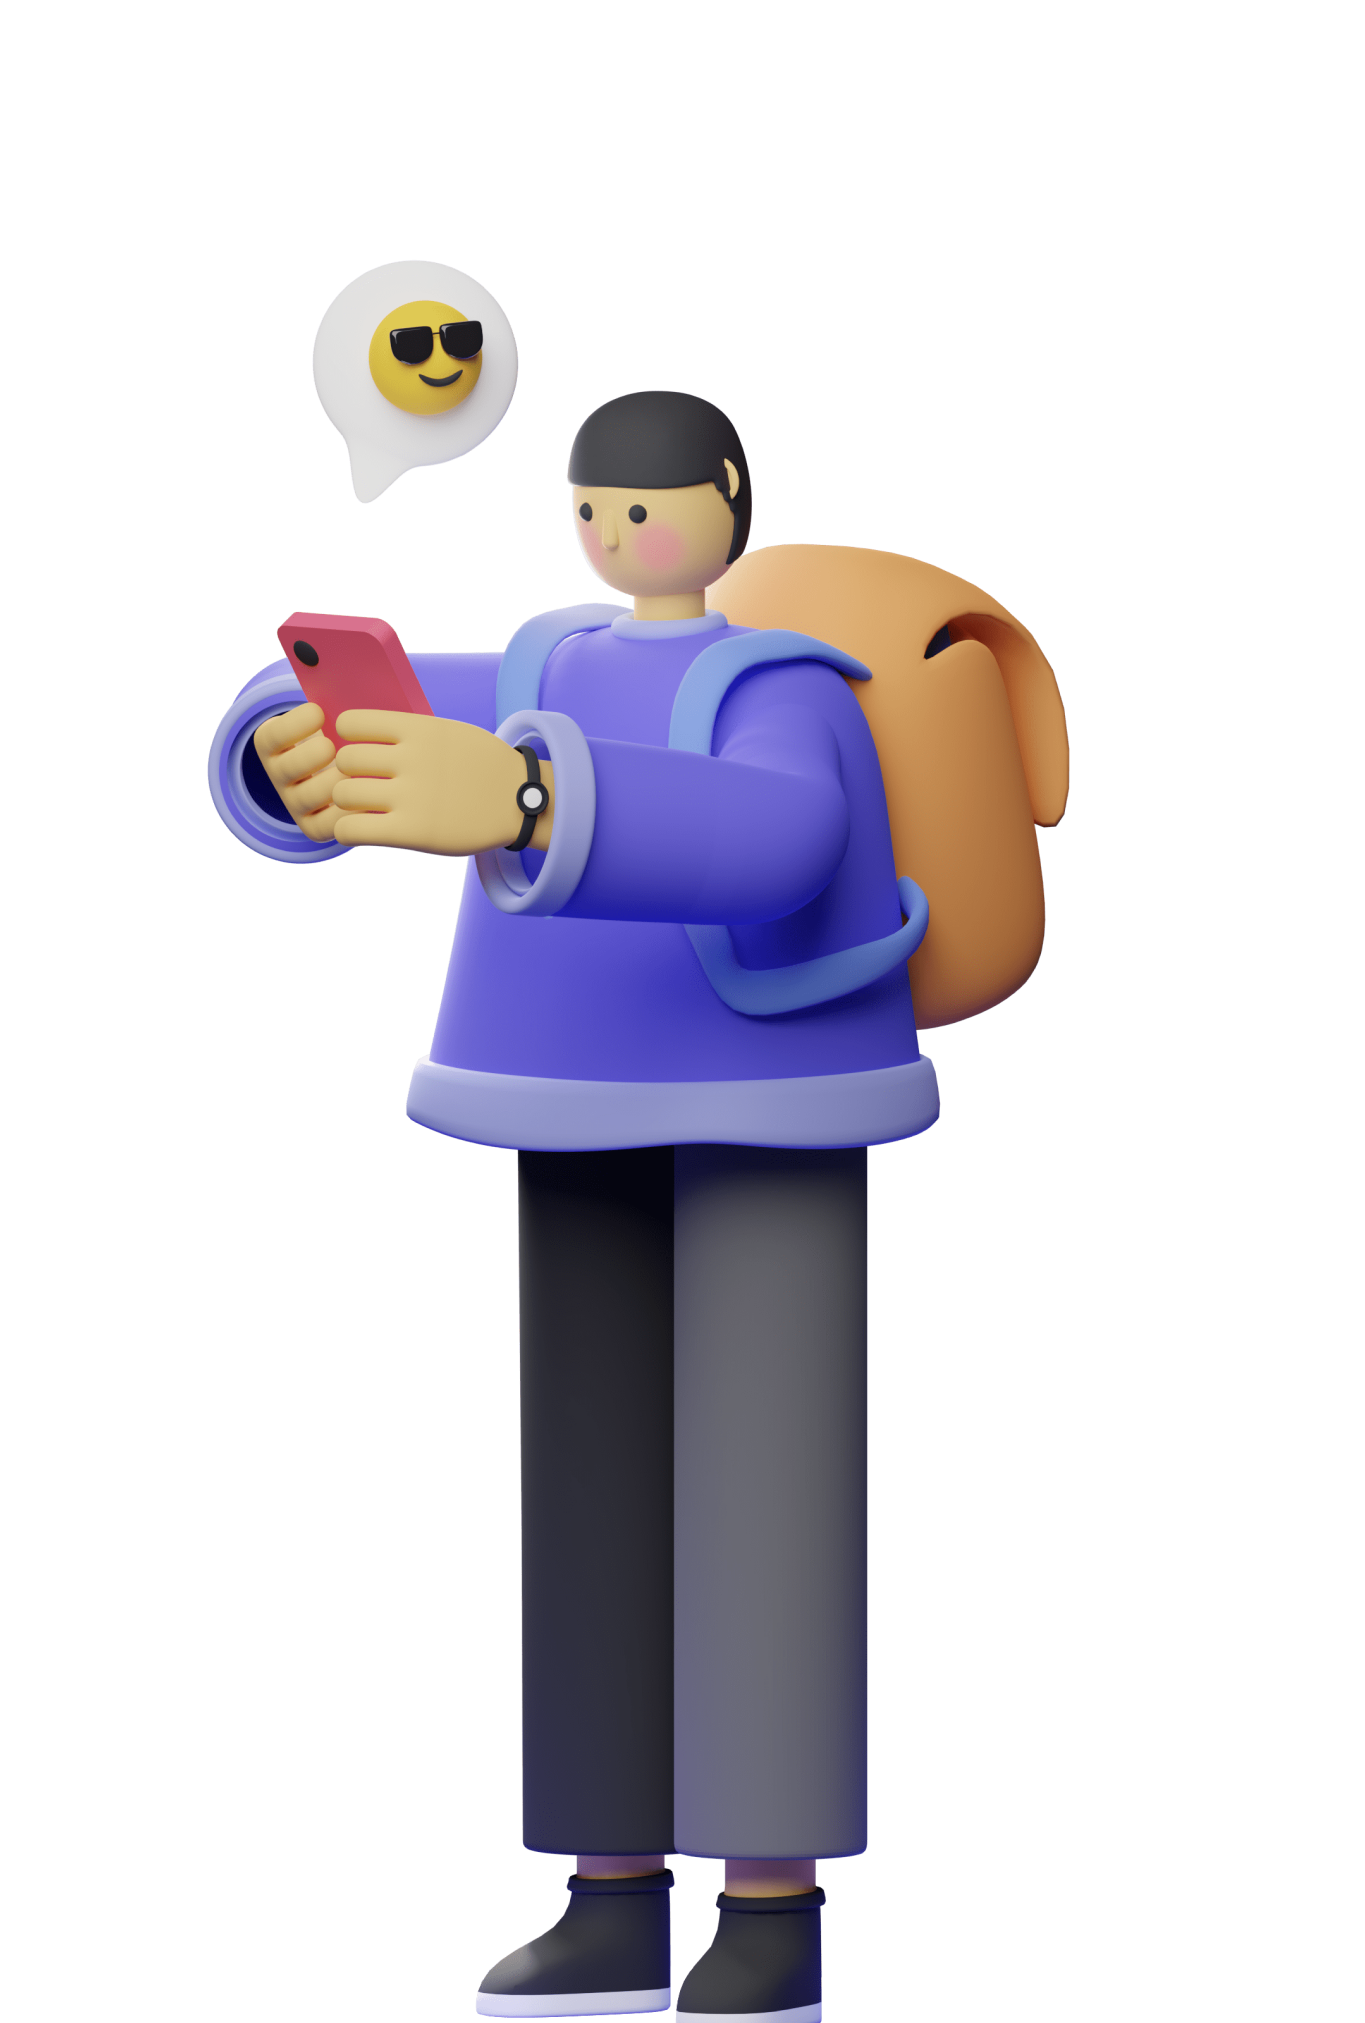 backpack1xPNG